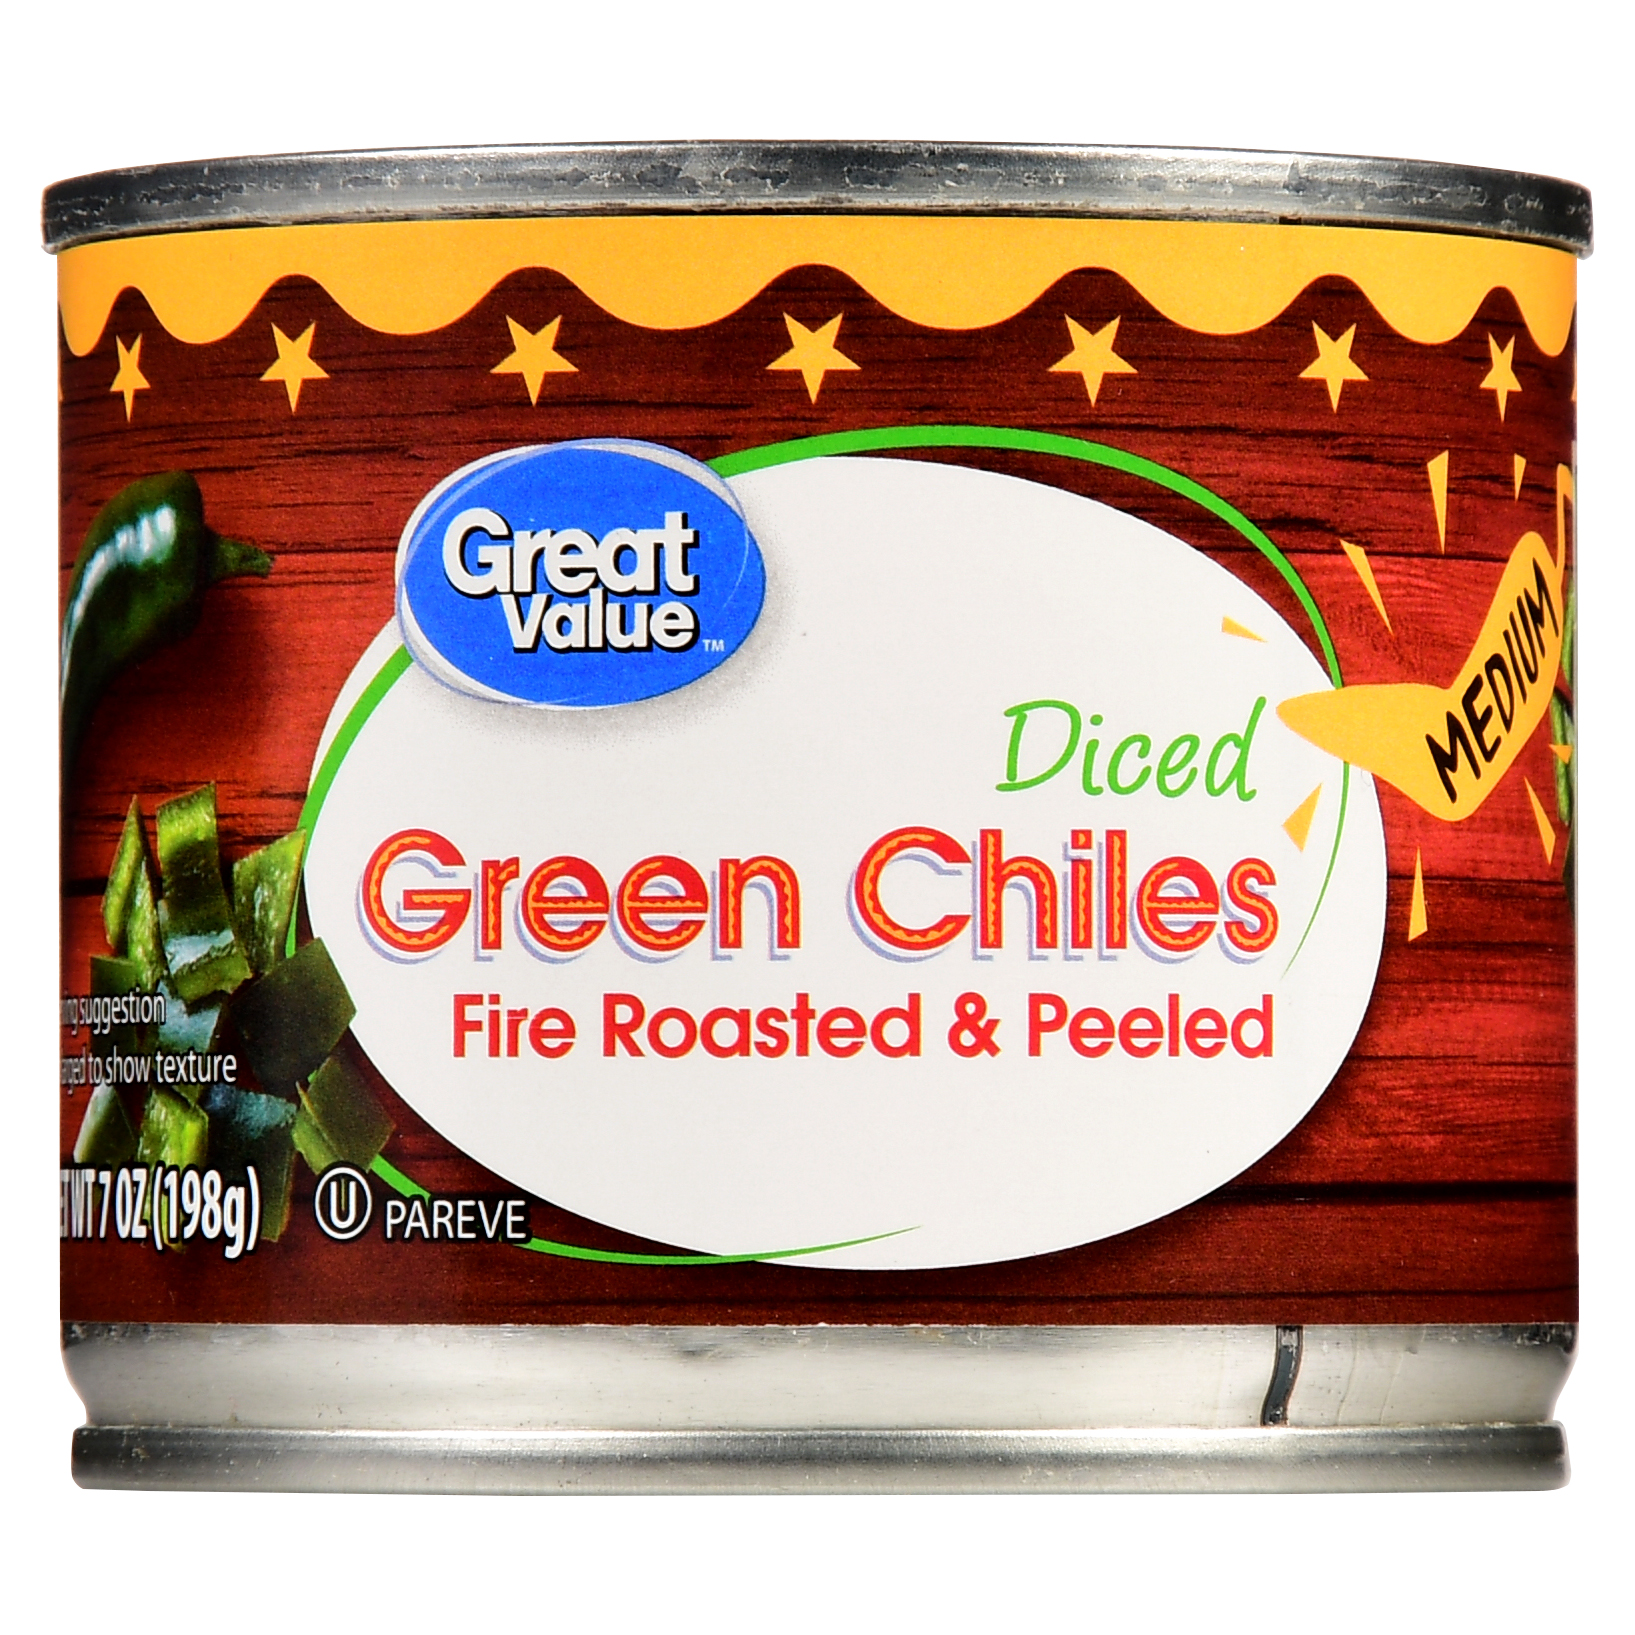 Great Value Chopped Diced Green Chiles Fire Roasted And Peeled, Medium, 7 Oz